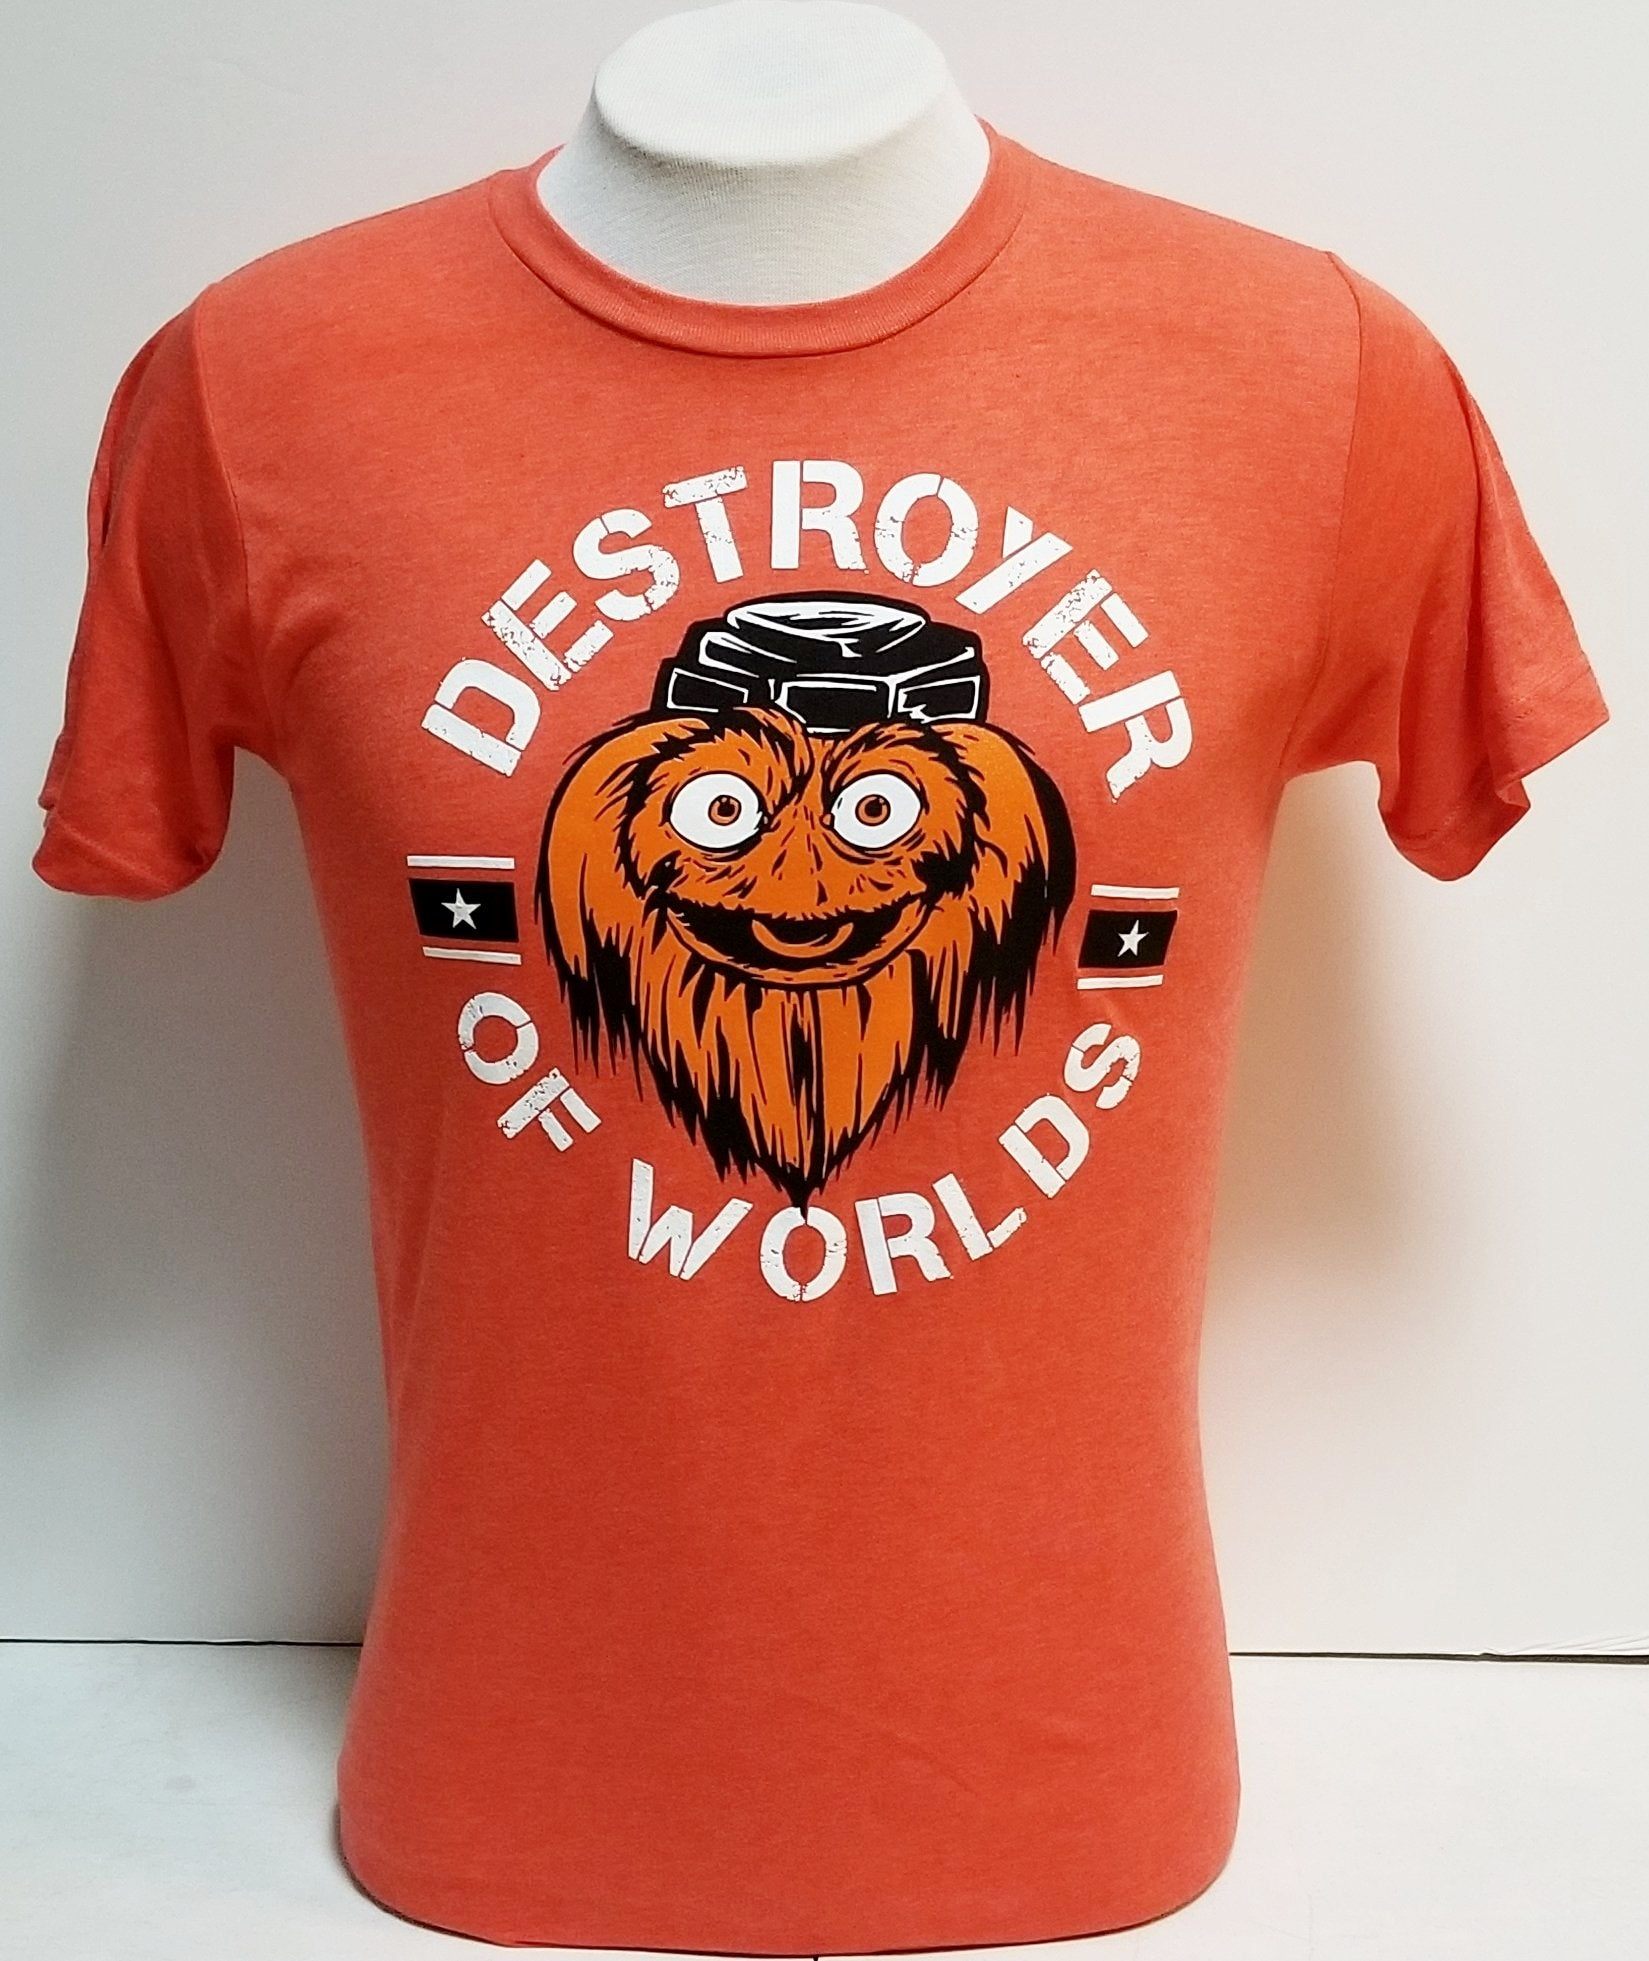 a054e81d686 Gritty Destroyer Of Worlds Orange tee shirt - Shibe Vintage Sports